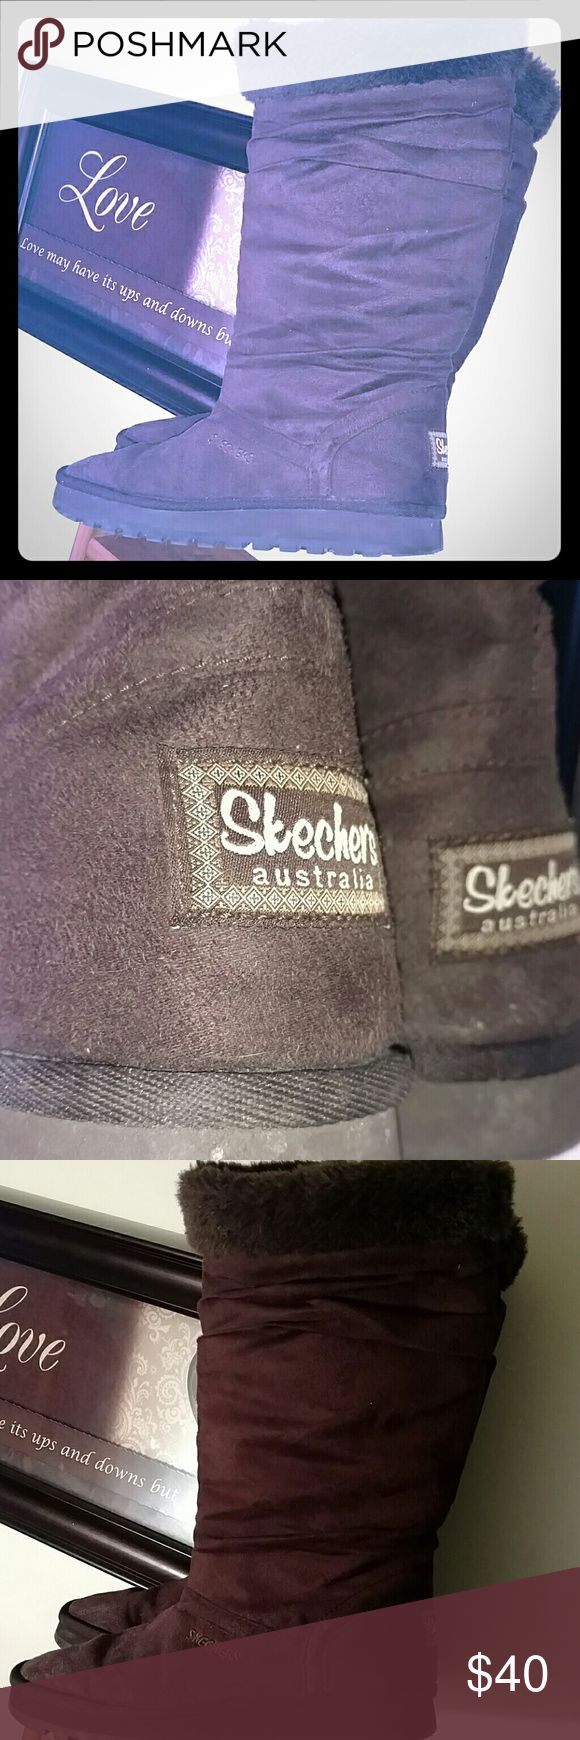 SKECHERS CHOCOLATE BROWN Suede Like  BOOTS Tall Calf Length Skecher Suede Boots Fleece like Fluffy liming Excellent Used Condition !! Soles & Boots in great condition Worn a few,times last season Darker Chocolate Brown Color Skechers Shoes Winter & Rain Boots